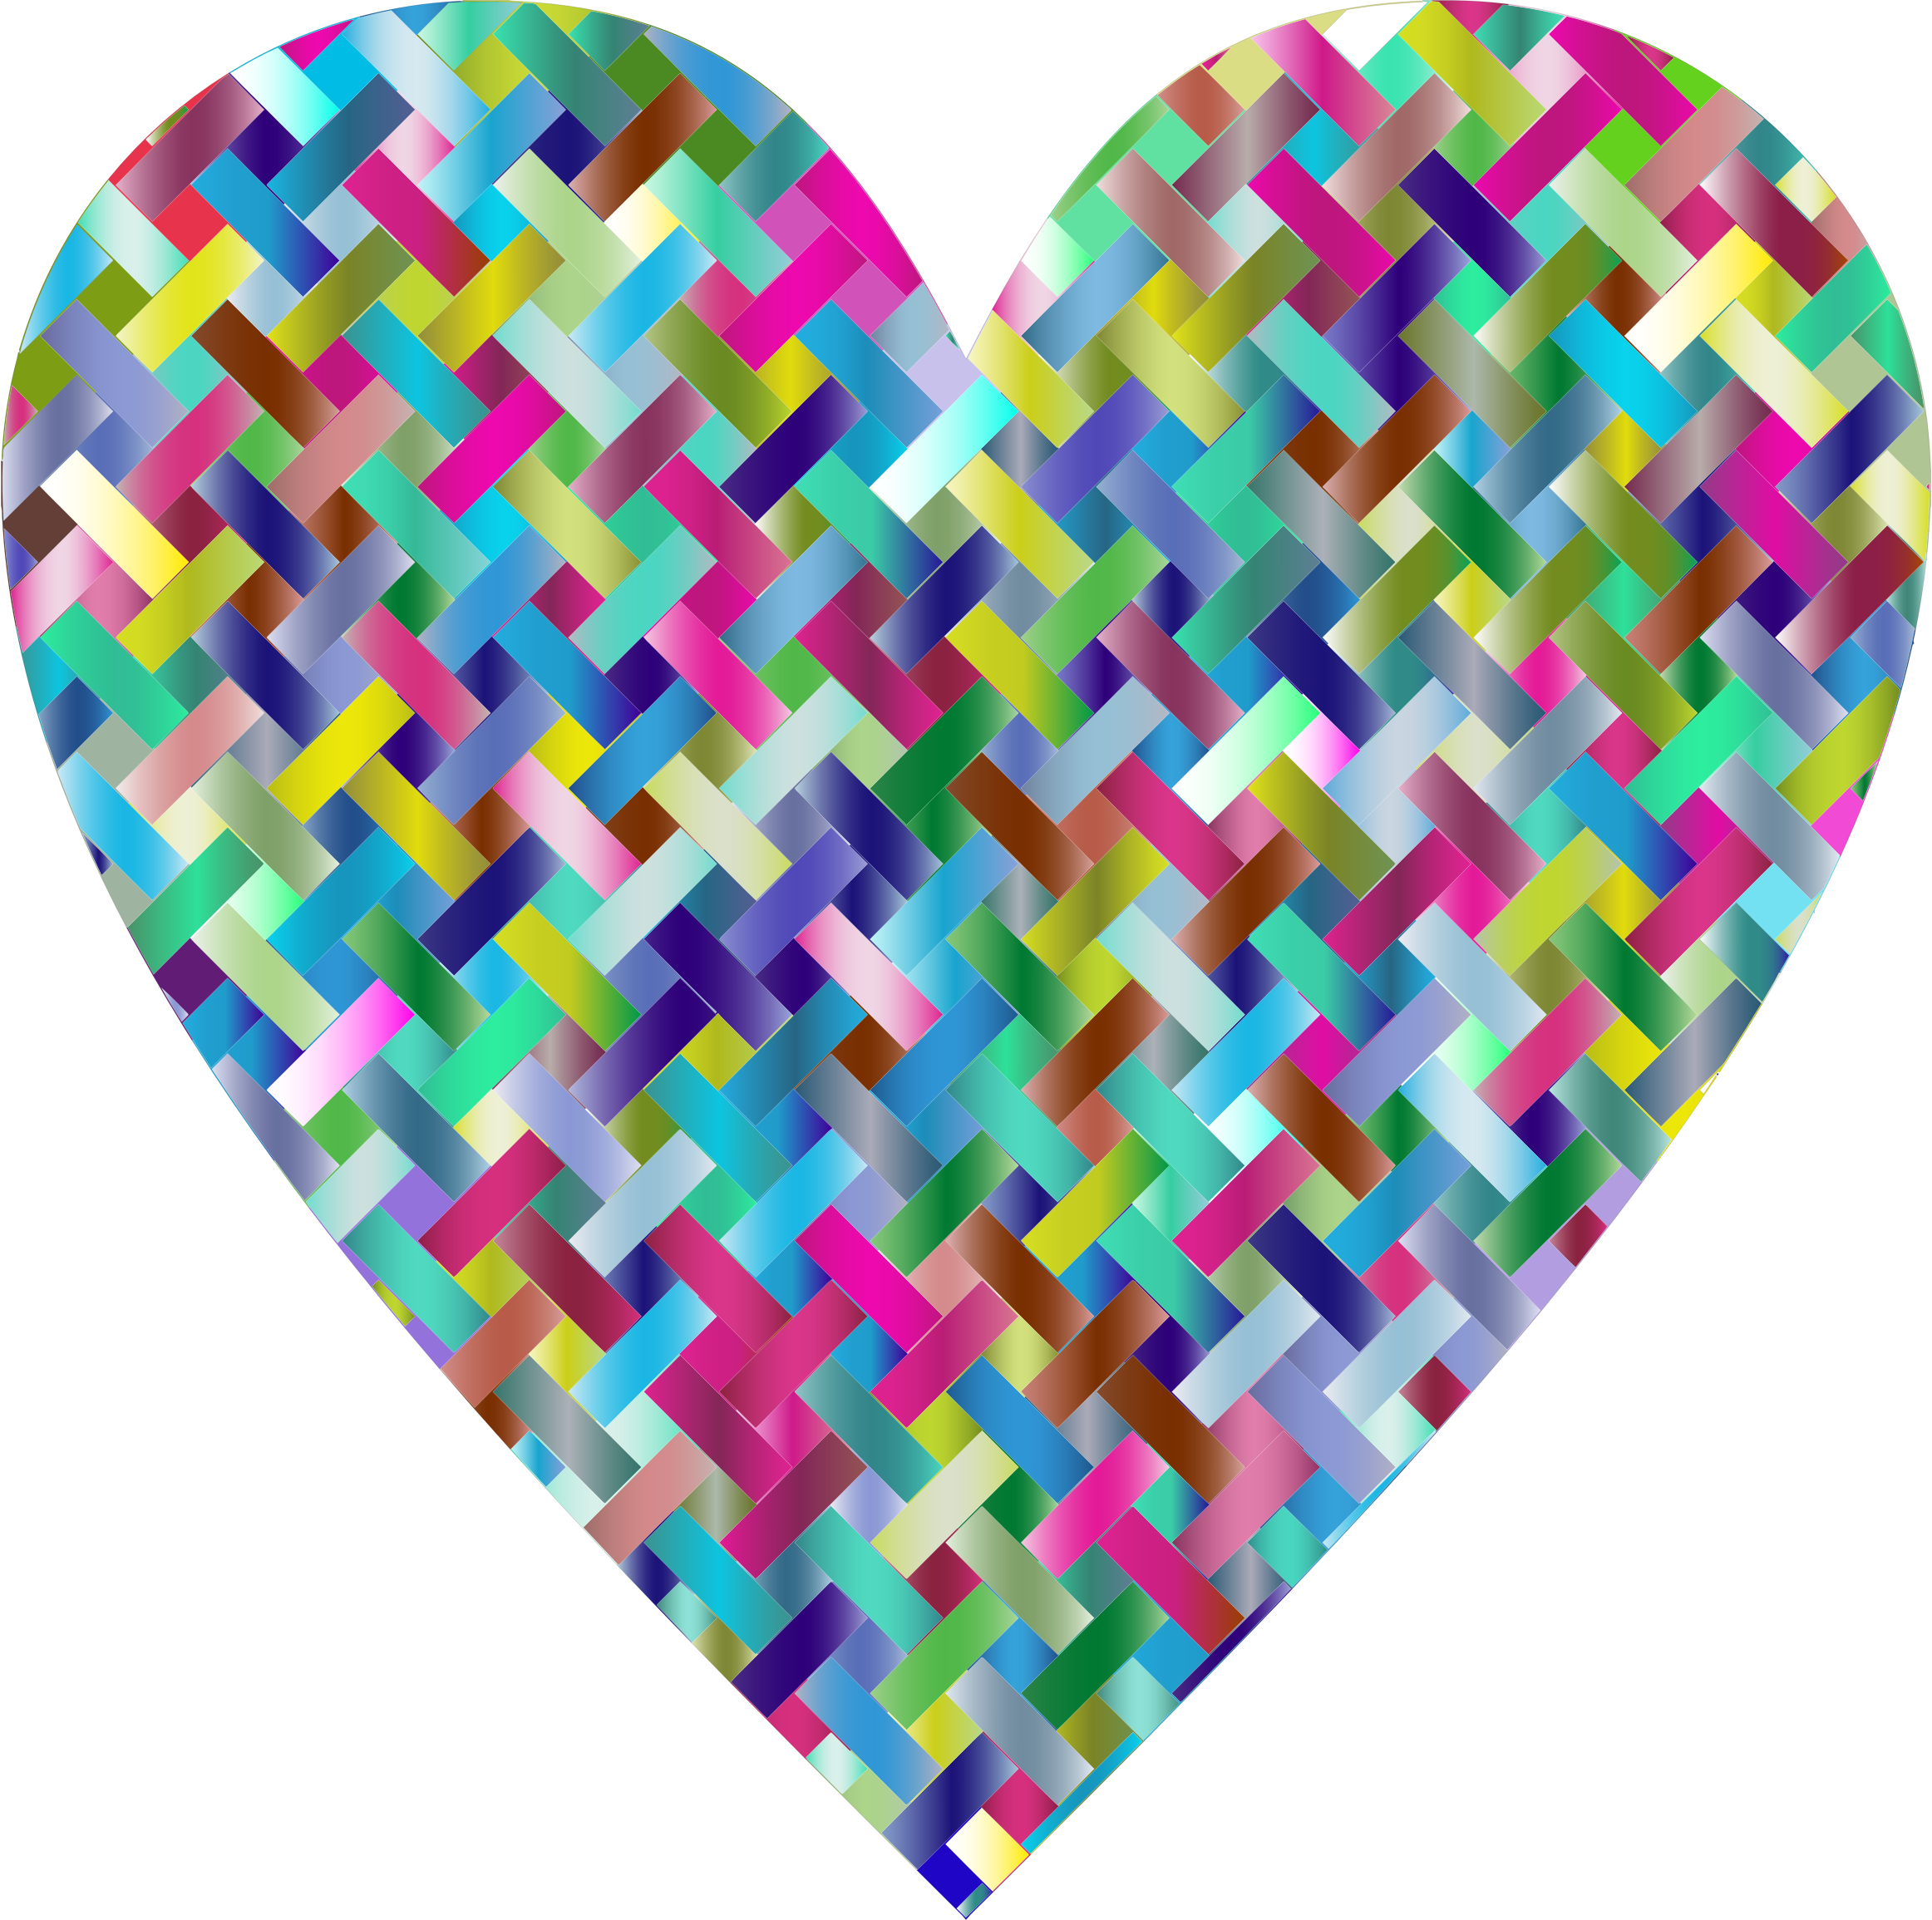 Colorful Heart Lattice Weave 4 by GDJ